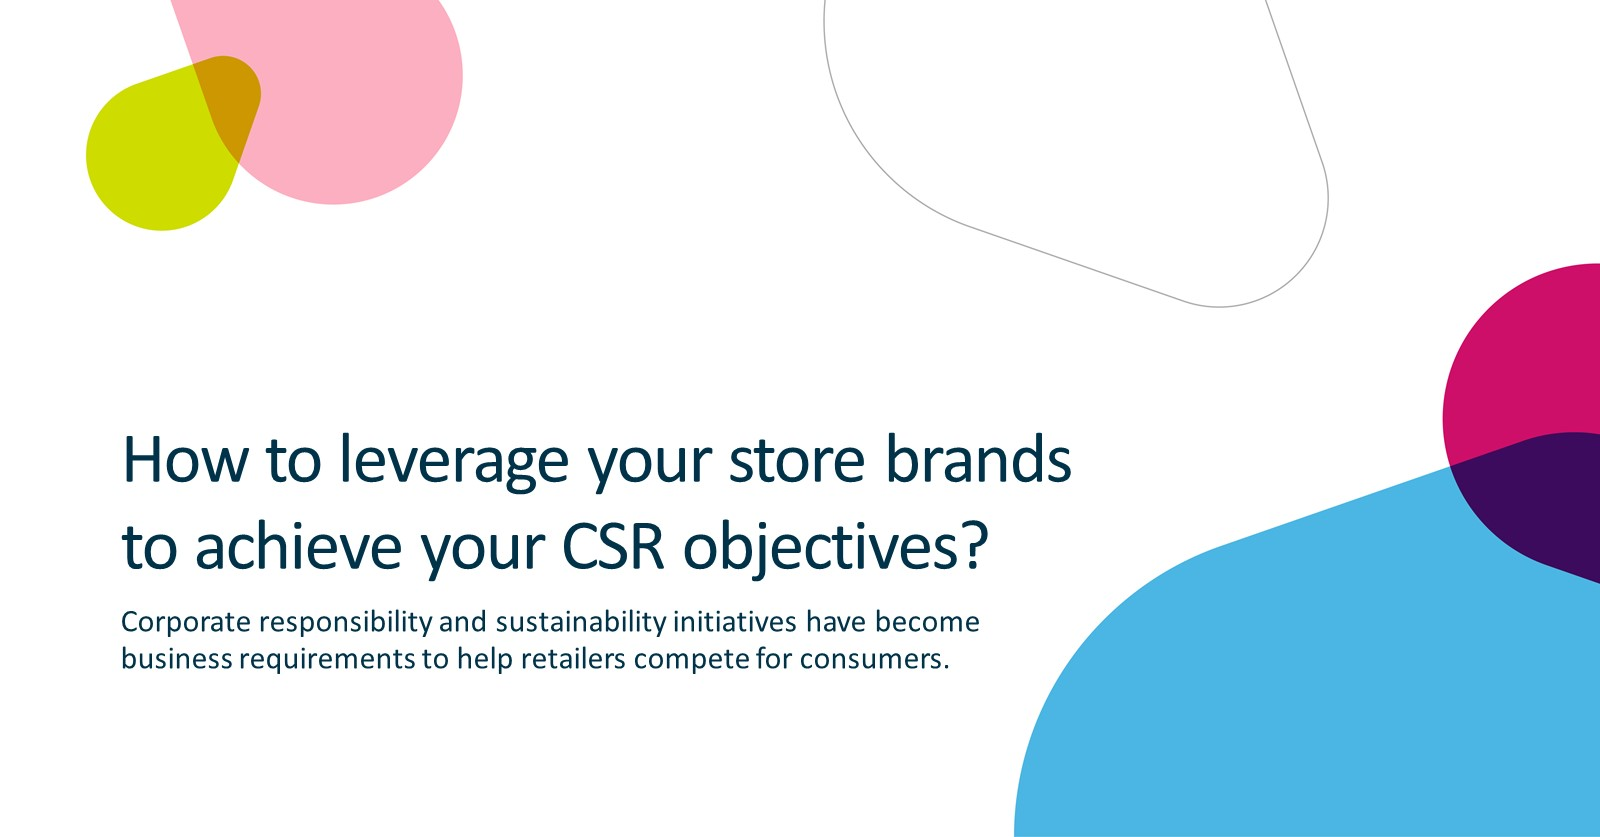 How to leverage your store brands to achieve your CSR objectives?